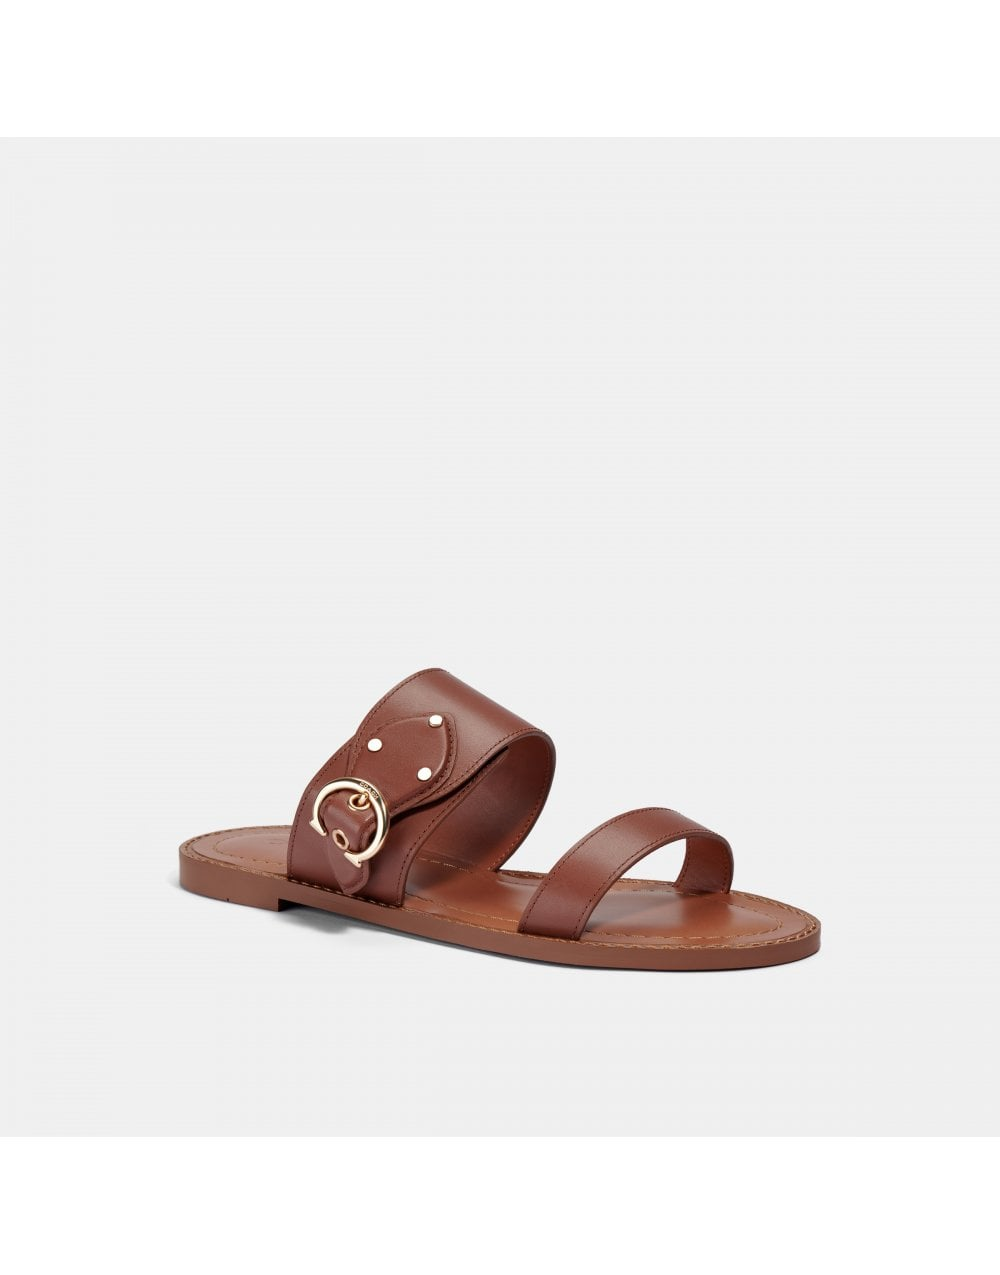 Coach HARLOW LEATHER BUCKLE SANDAL